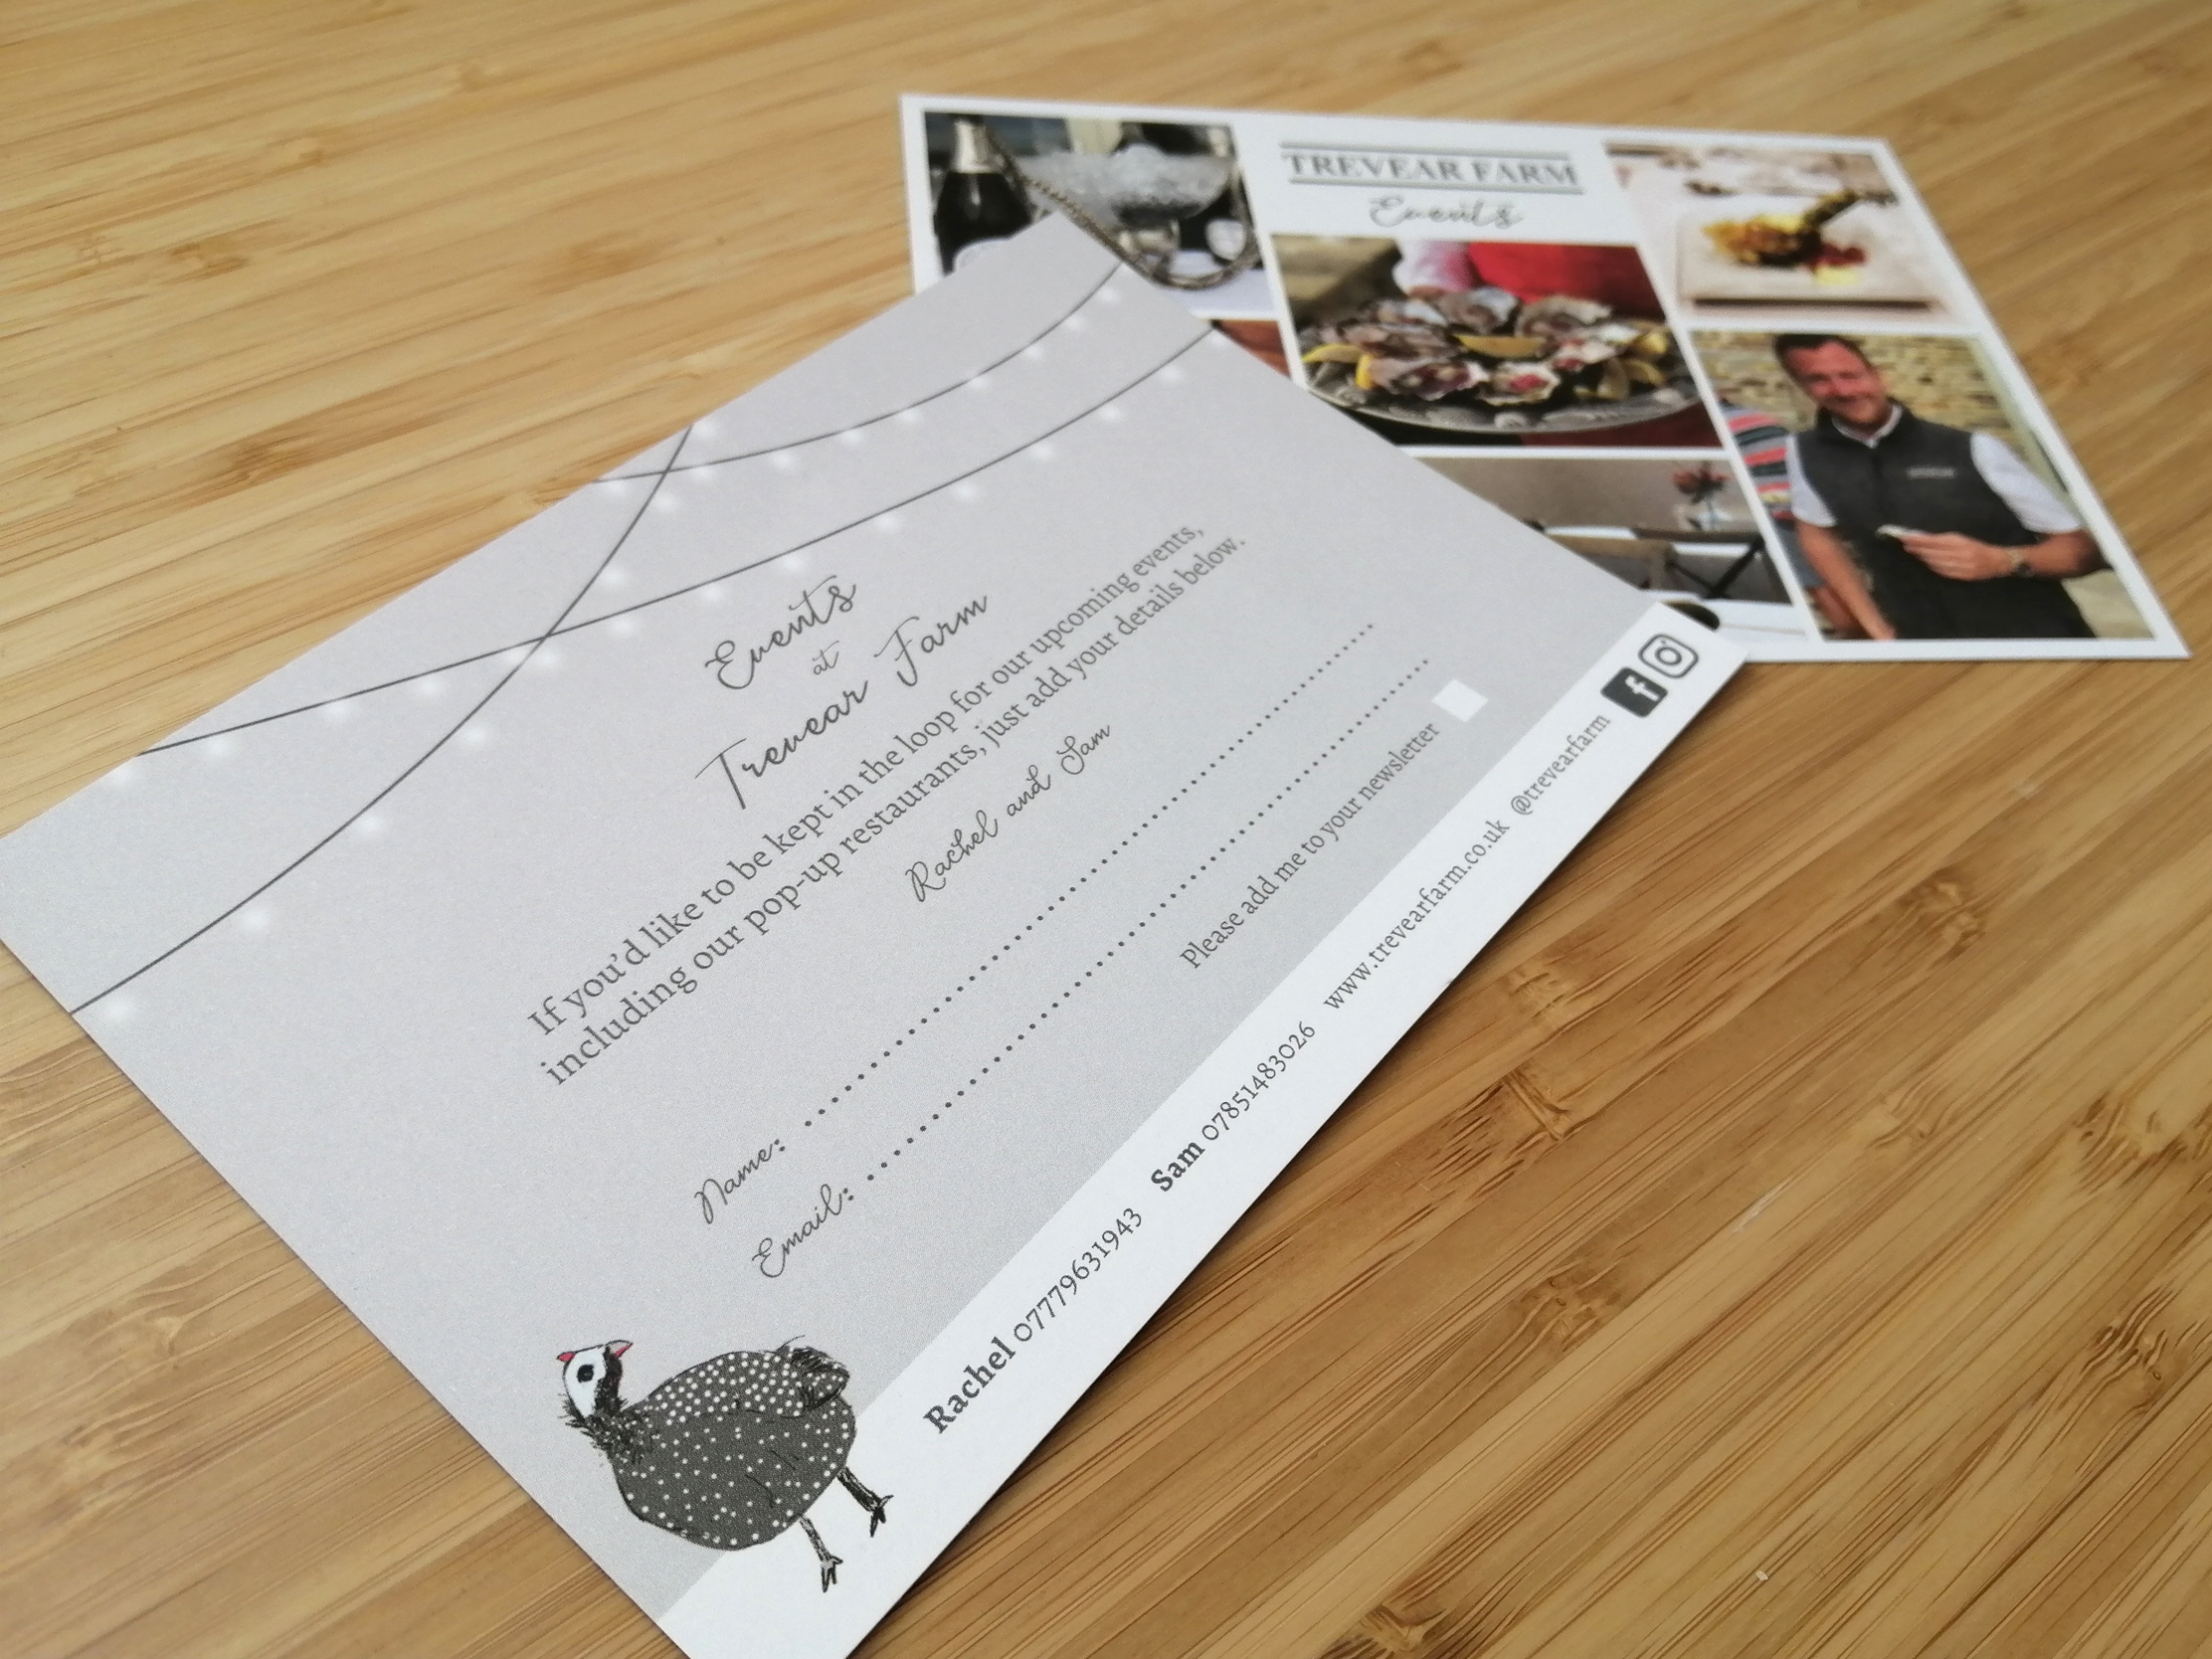 Uncoated A6 flyer for Trevear Farm holiday cottages